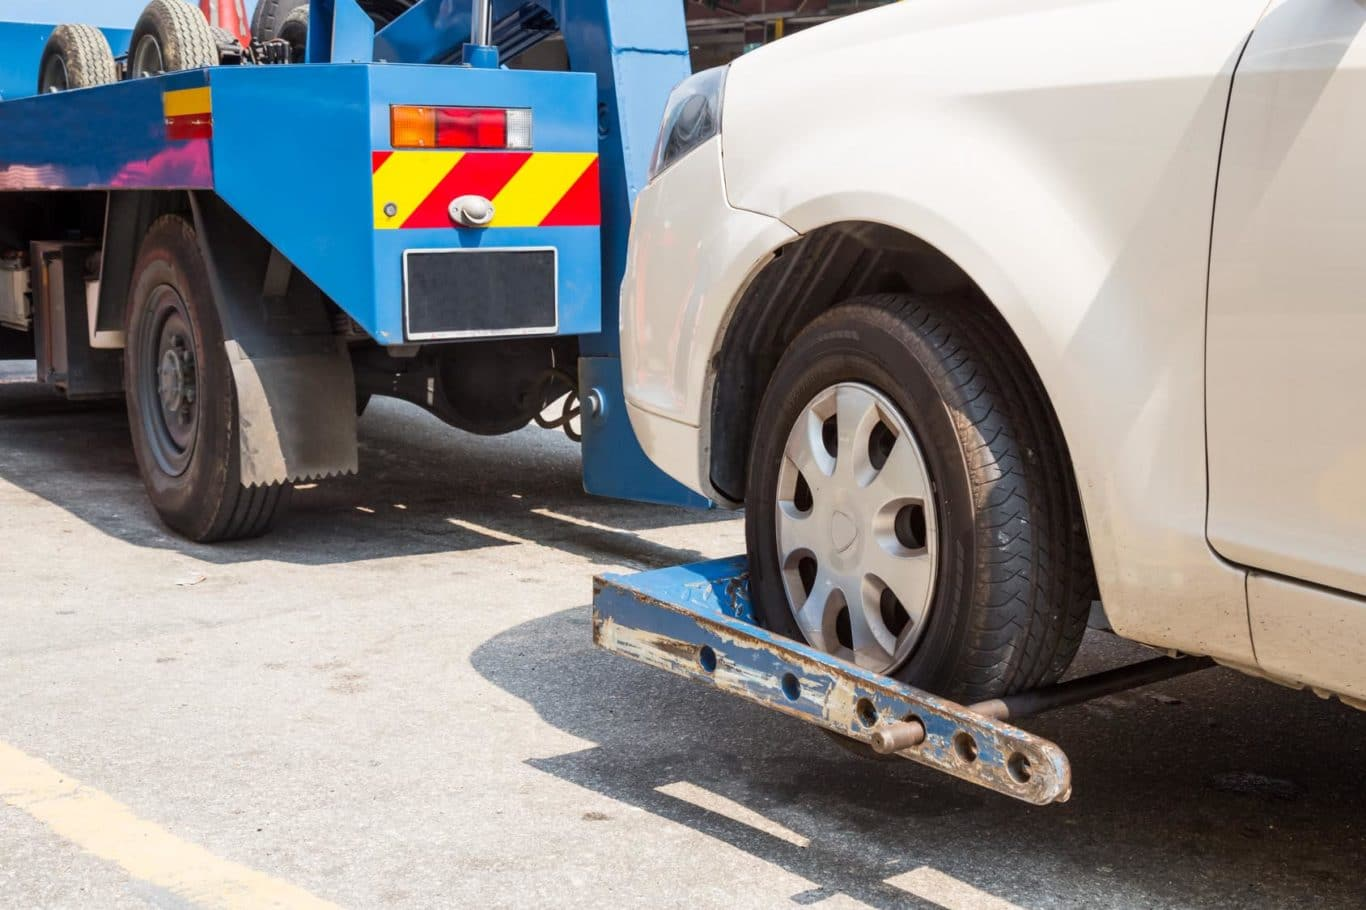 Donnybrook expert Car Towing services